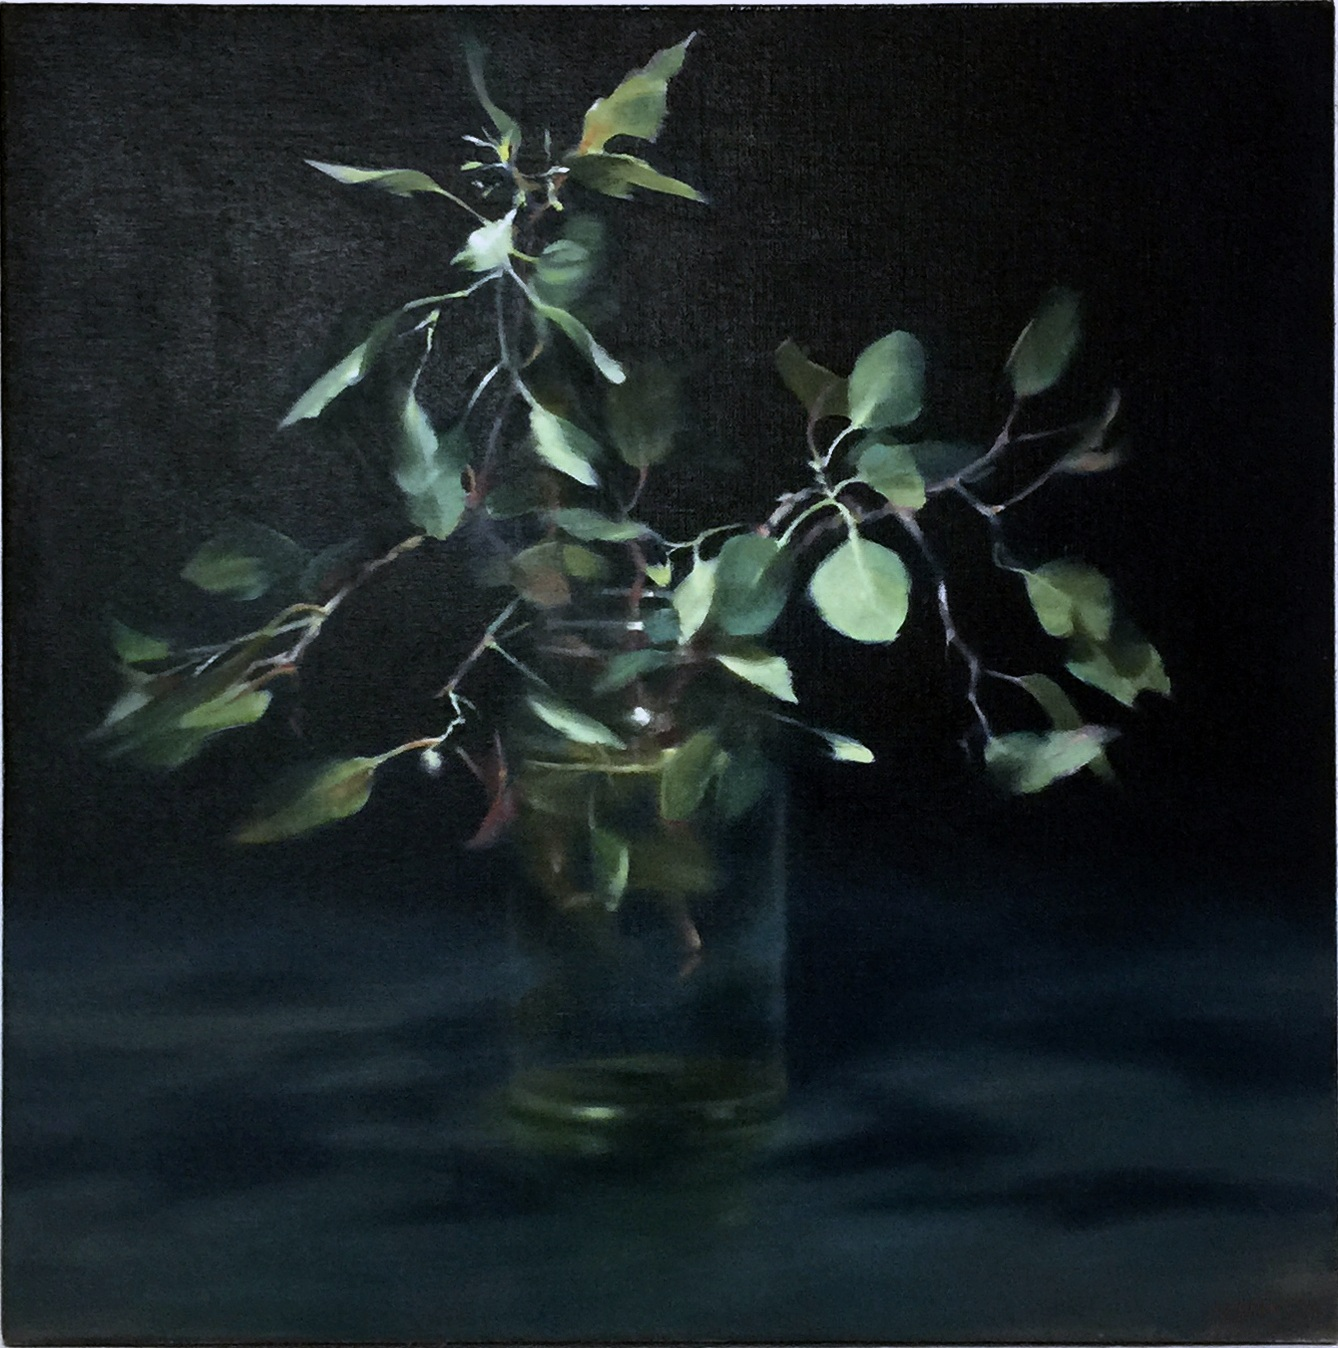 HILARY JACKMAN  Leaves in a Jar , 2019 oil on linen 62 x 62 cm